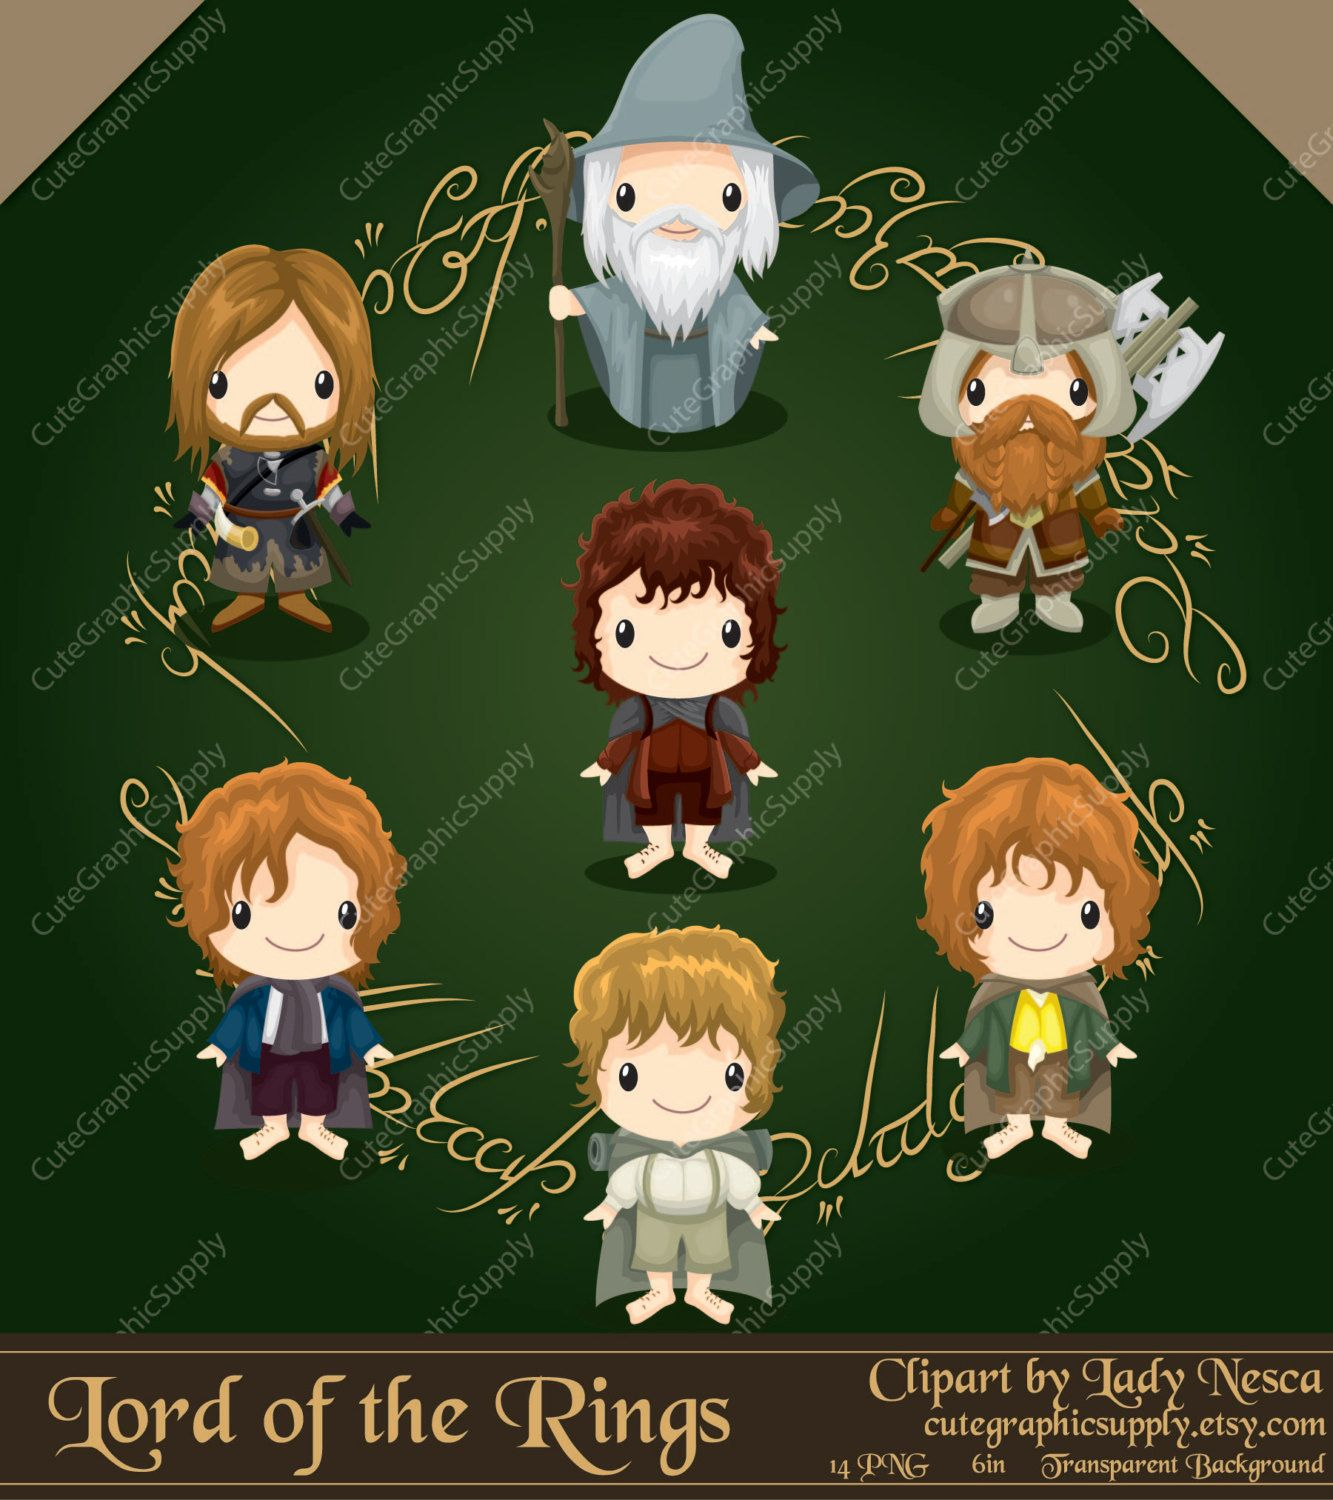 Lord of the Rings inspired clipart, hobbit clipart, elf clipart,  fellowship, Lord of the Rings, LOTR clipart -LN090-